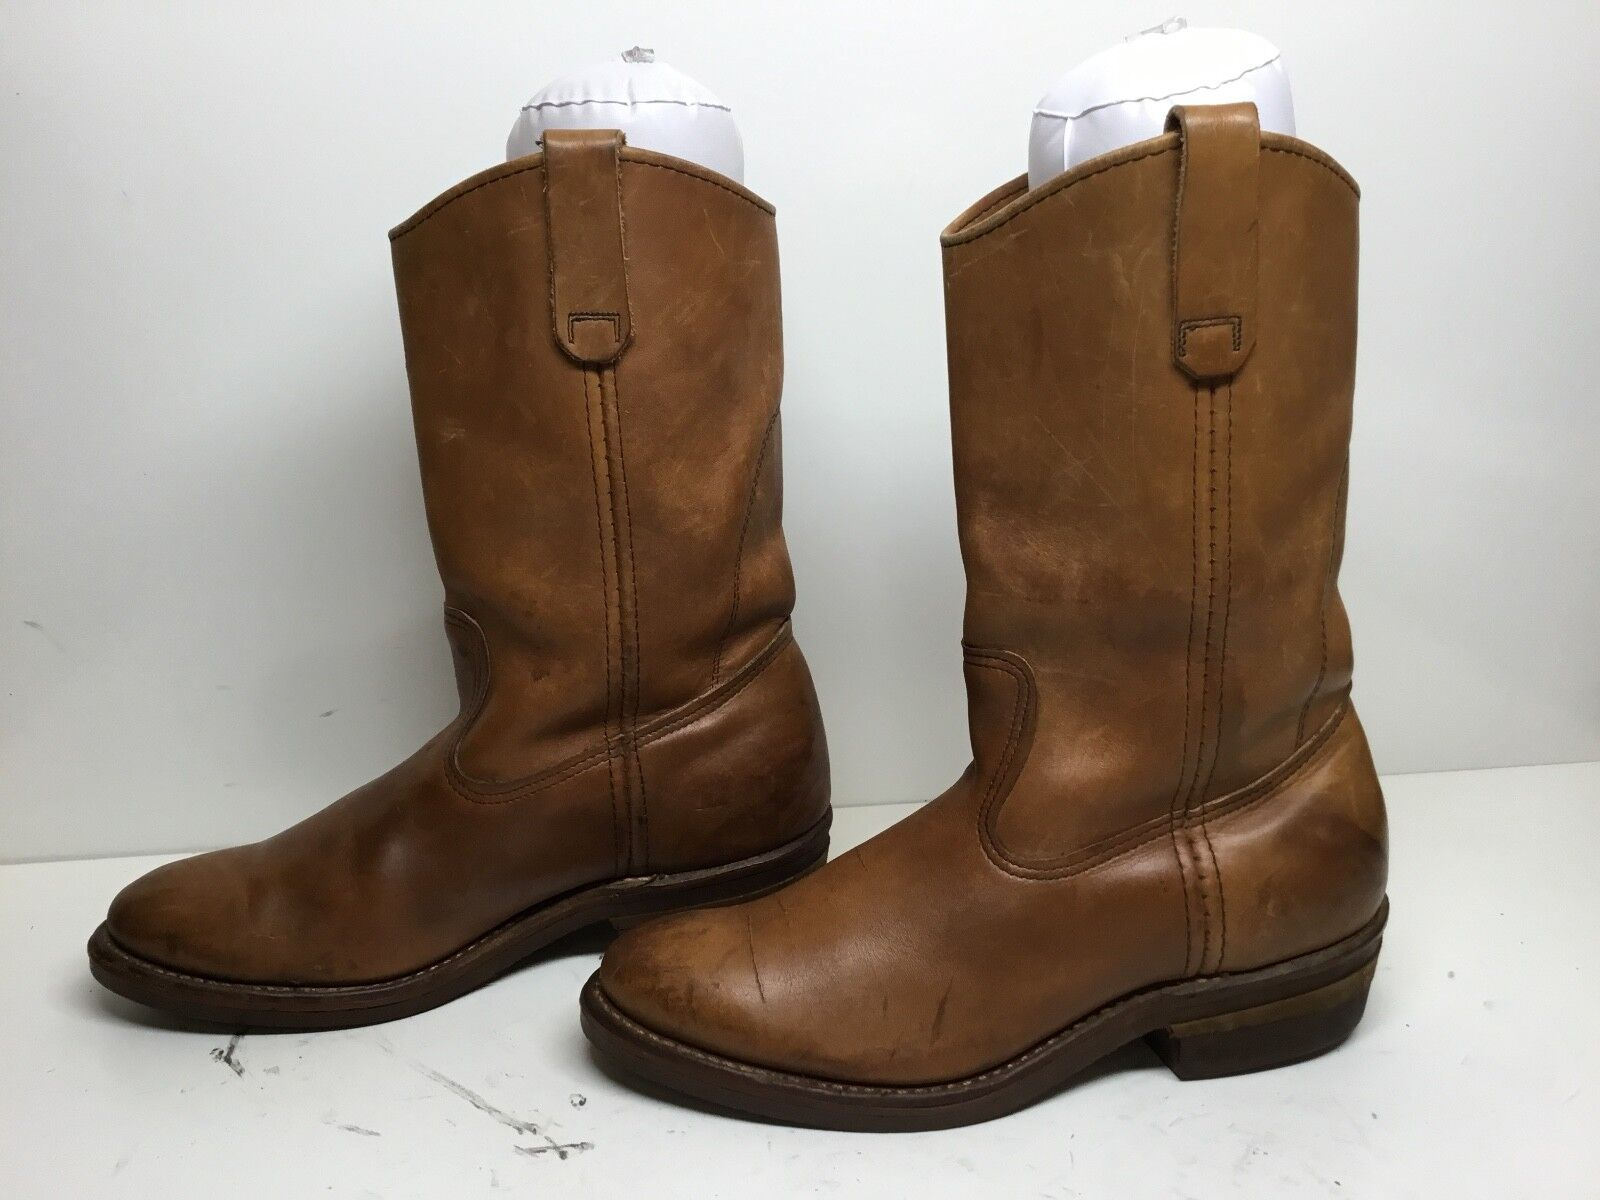 VTG MENS RED WING WORK LEATHER BROWN BOOTS SIZE 7 D